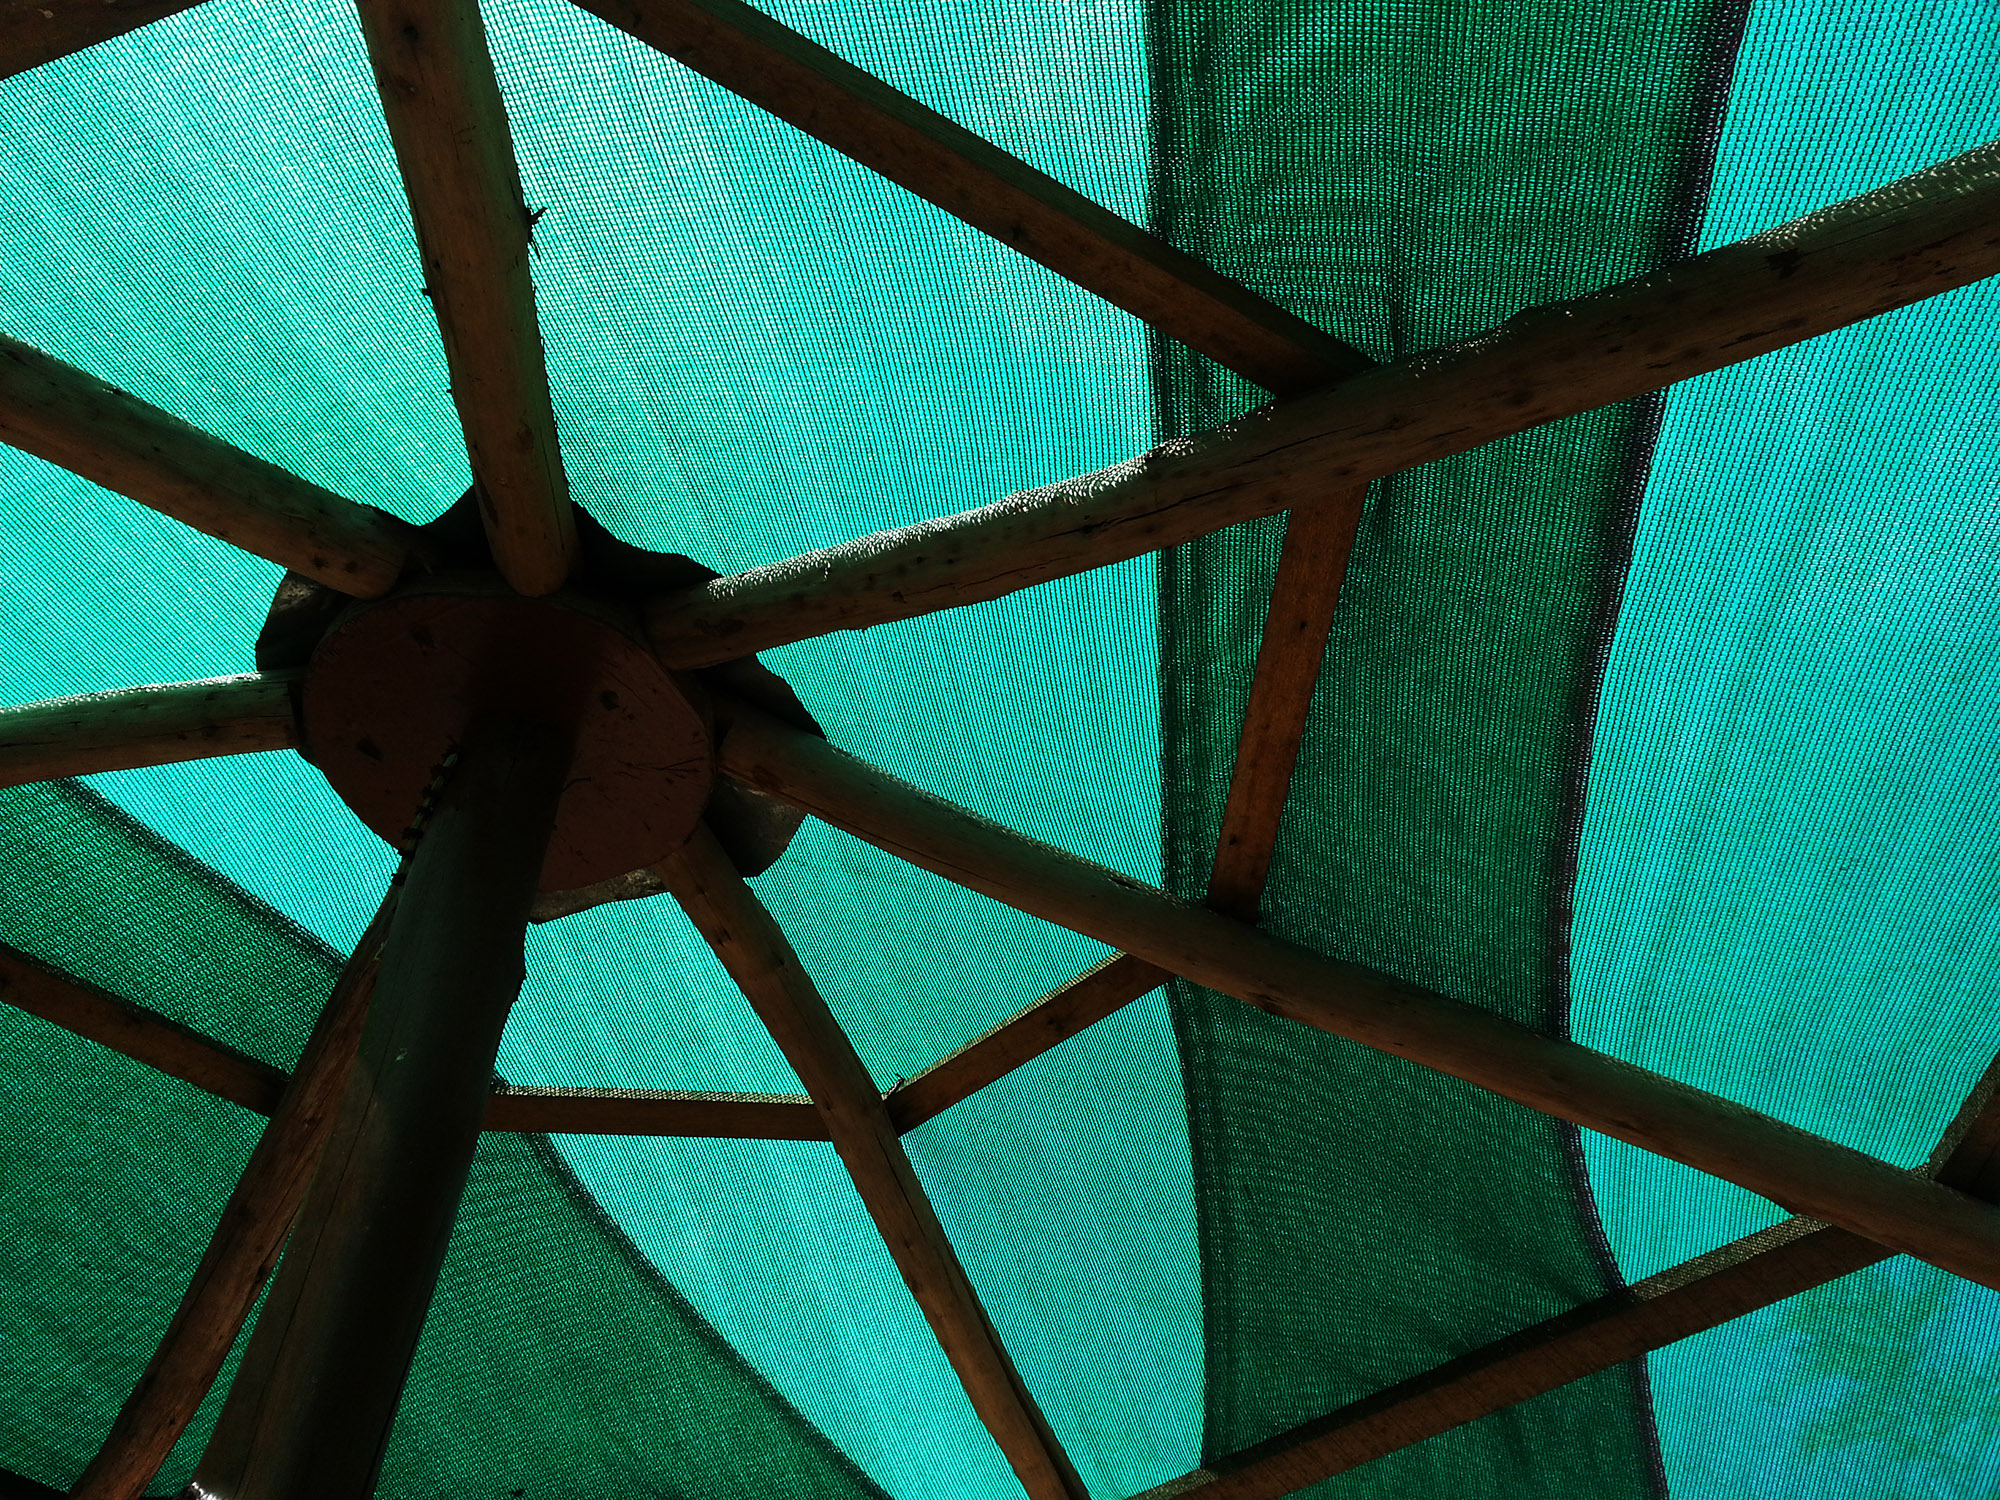 I was at one of the gazebo near the lake. found very interesting pattern on the top along with beautiful light passing though. Because of the light, the shades of green and the the different color tones are distinguishable.